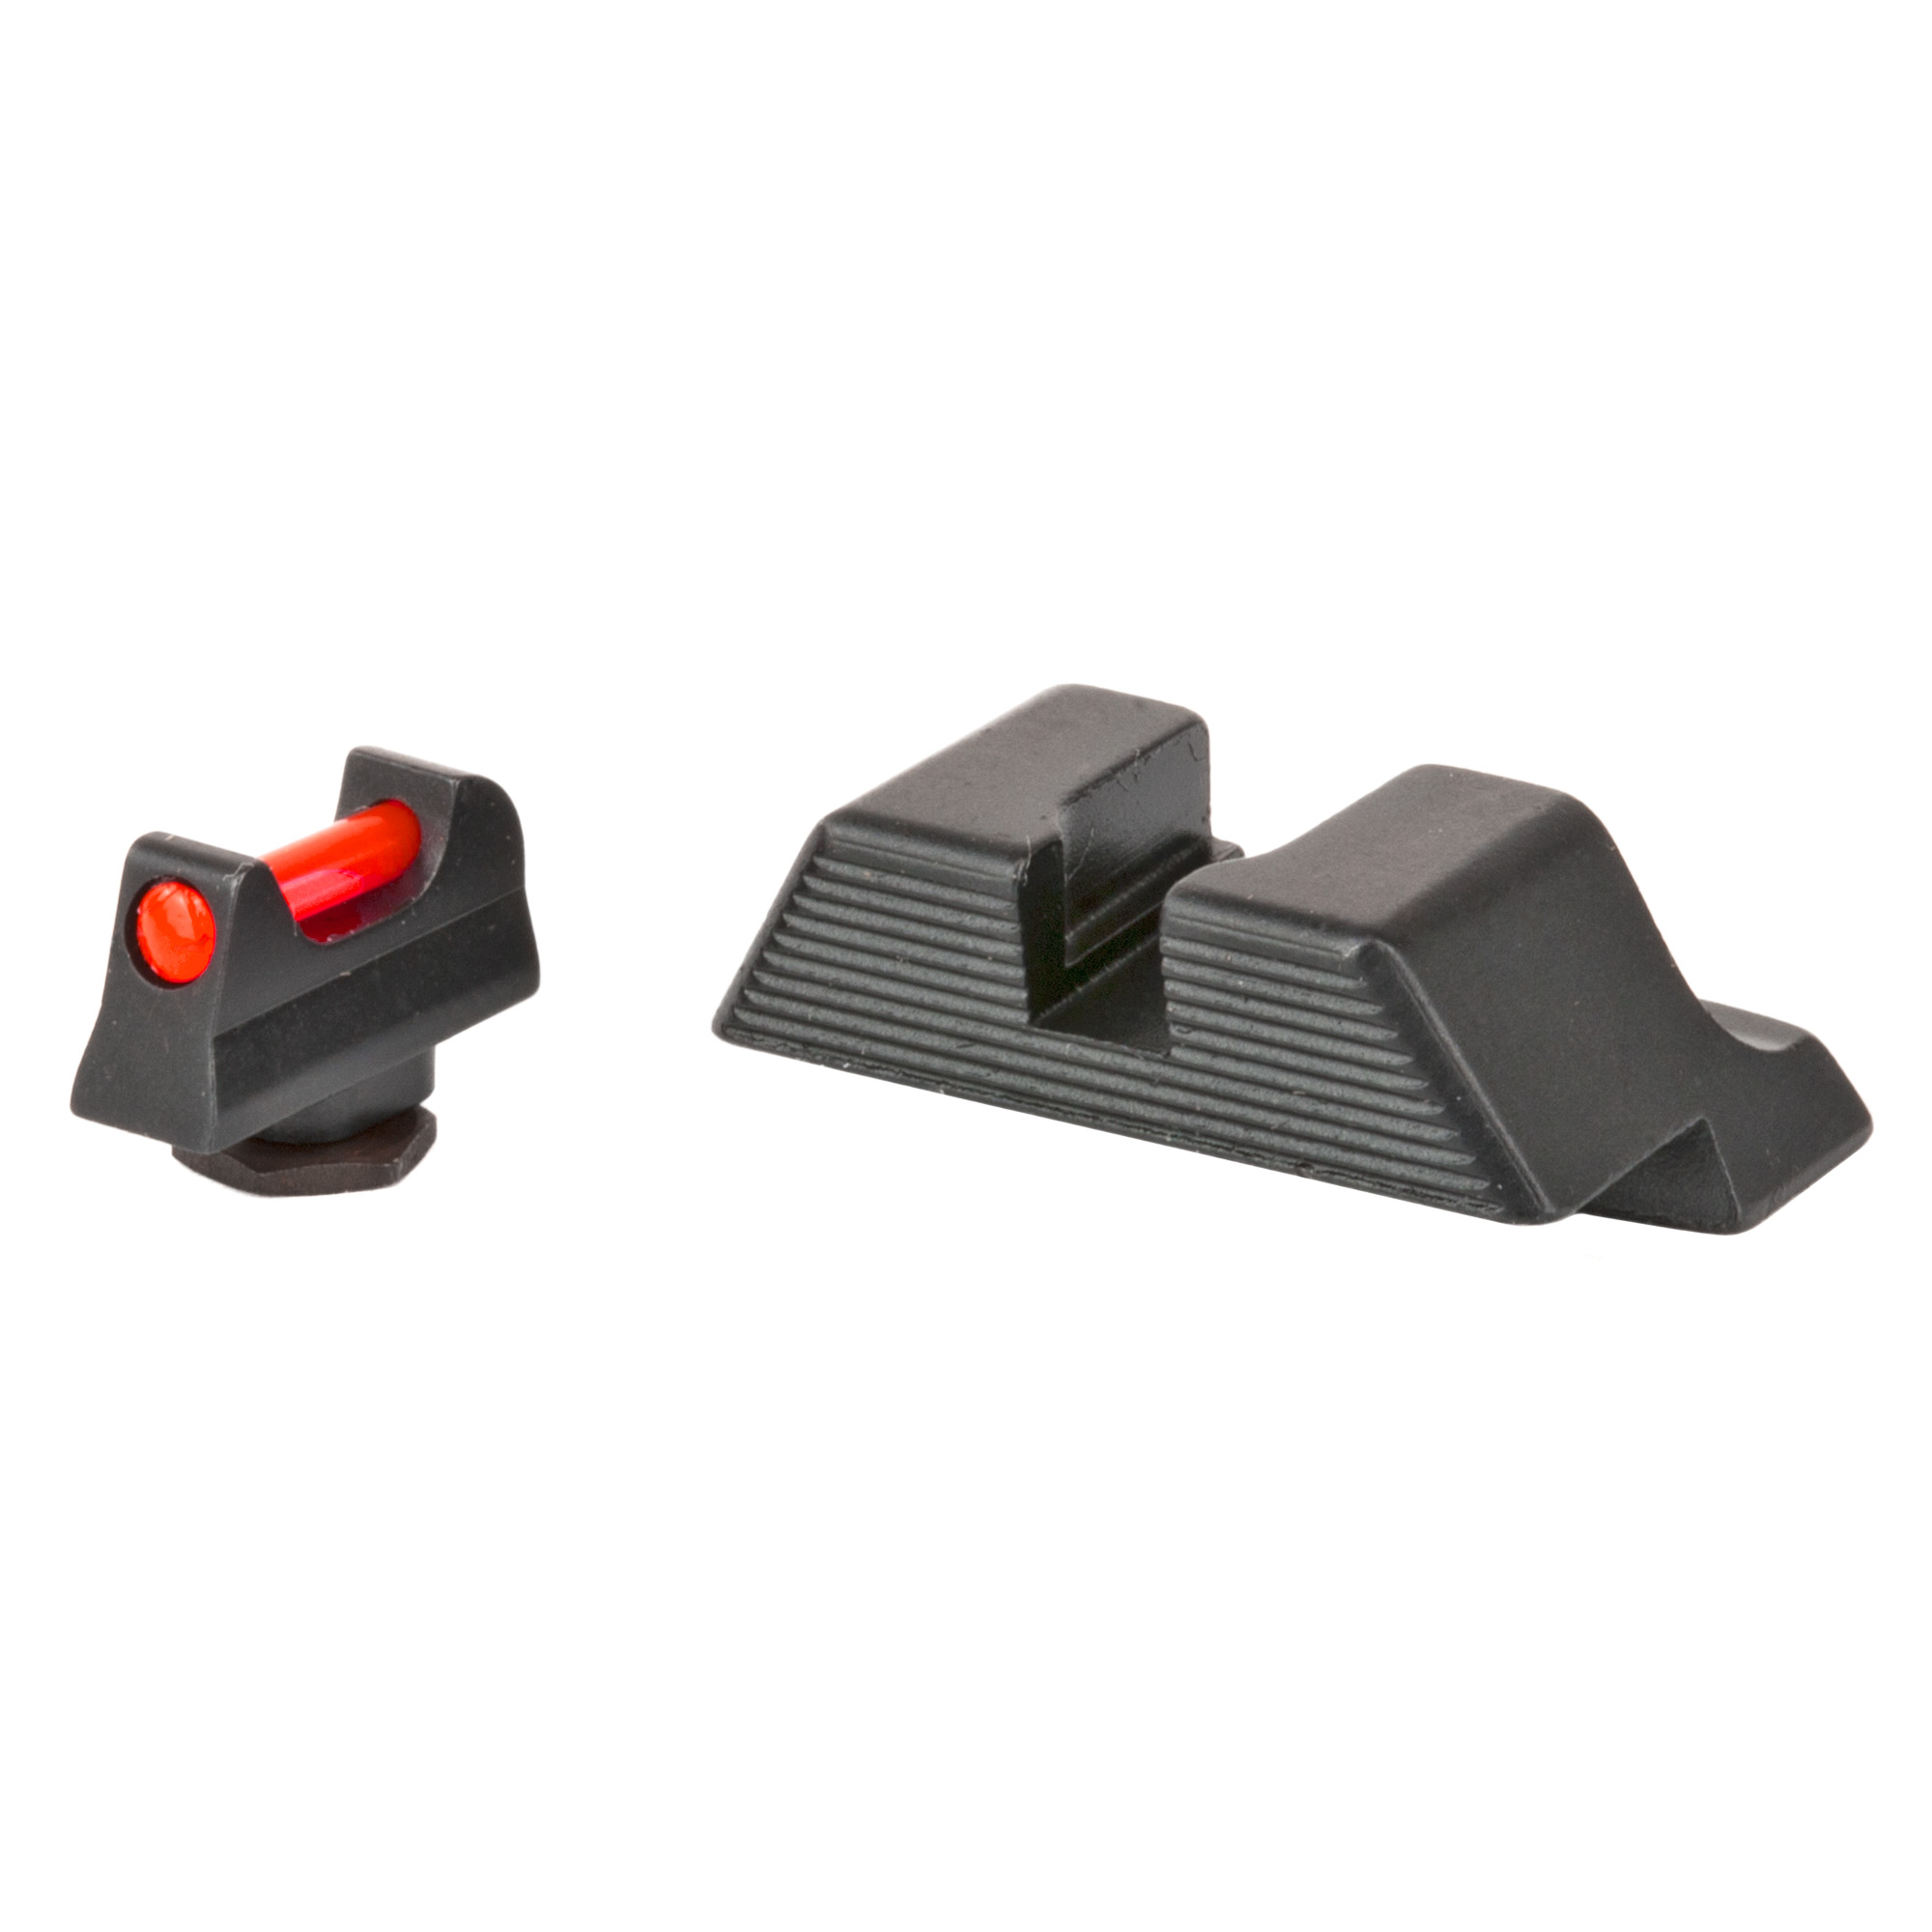 "Trijicon(R) Fiber Sight Set - for Glock(R) Pistols: Behind Trijicon(R) Fiber Sights is years of engineering and manufacturing experience in producing the industry's leading night sight and fiber illuminated scopes and sights. Featuring similar fiber optic materials used in several Trijicon(R) fiber optic scopes and sights"" including the battle-proven ACOG(R)"" the Trijicon(R) Fiber Sights are purposely engineered to bring the absolute brightest aiming point while retaining strength and maintaining a refined sight picture. Whether carrying or competing"" these bright"" thin sights create the perfect aiming point for fast"" accurate rounds on target."